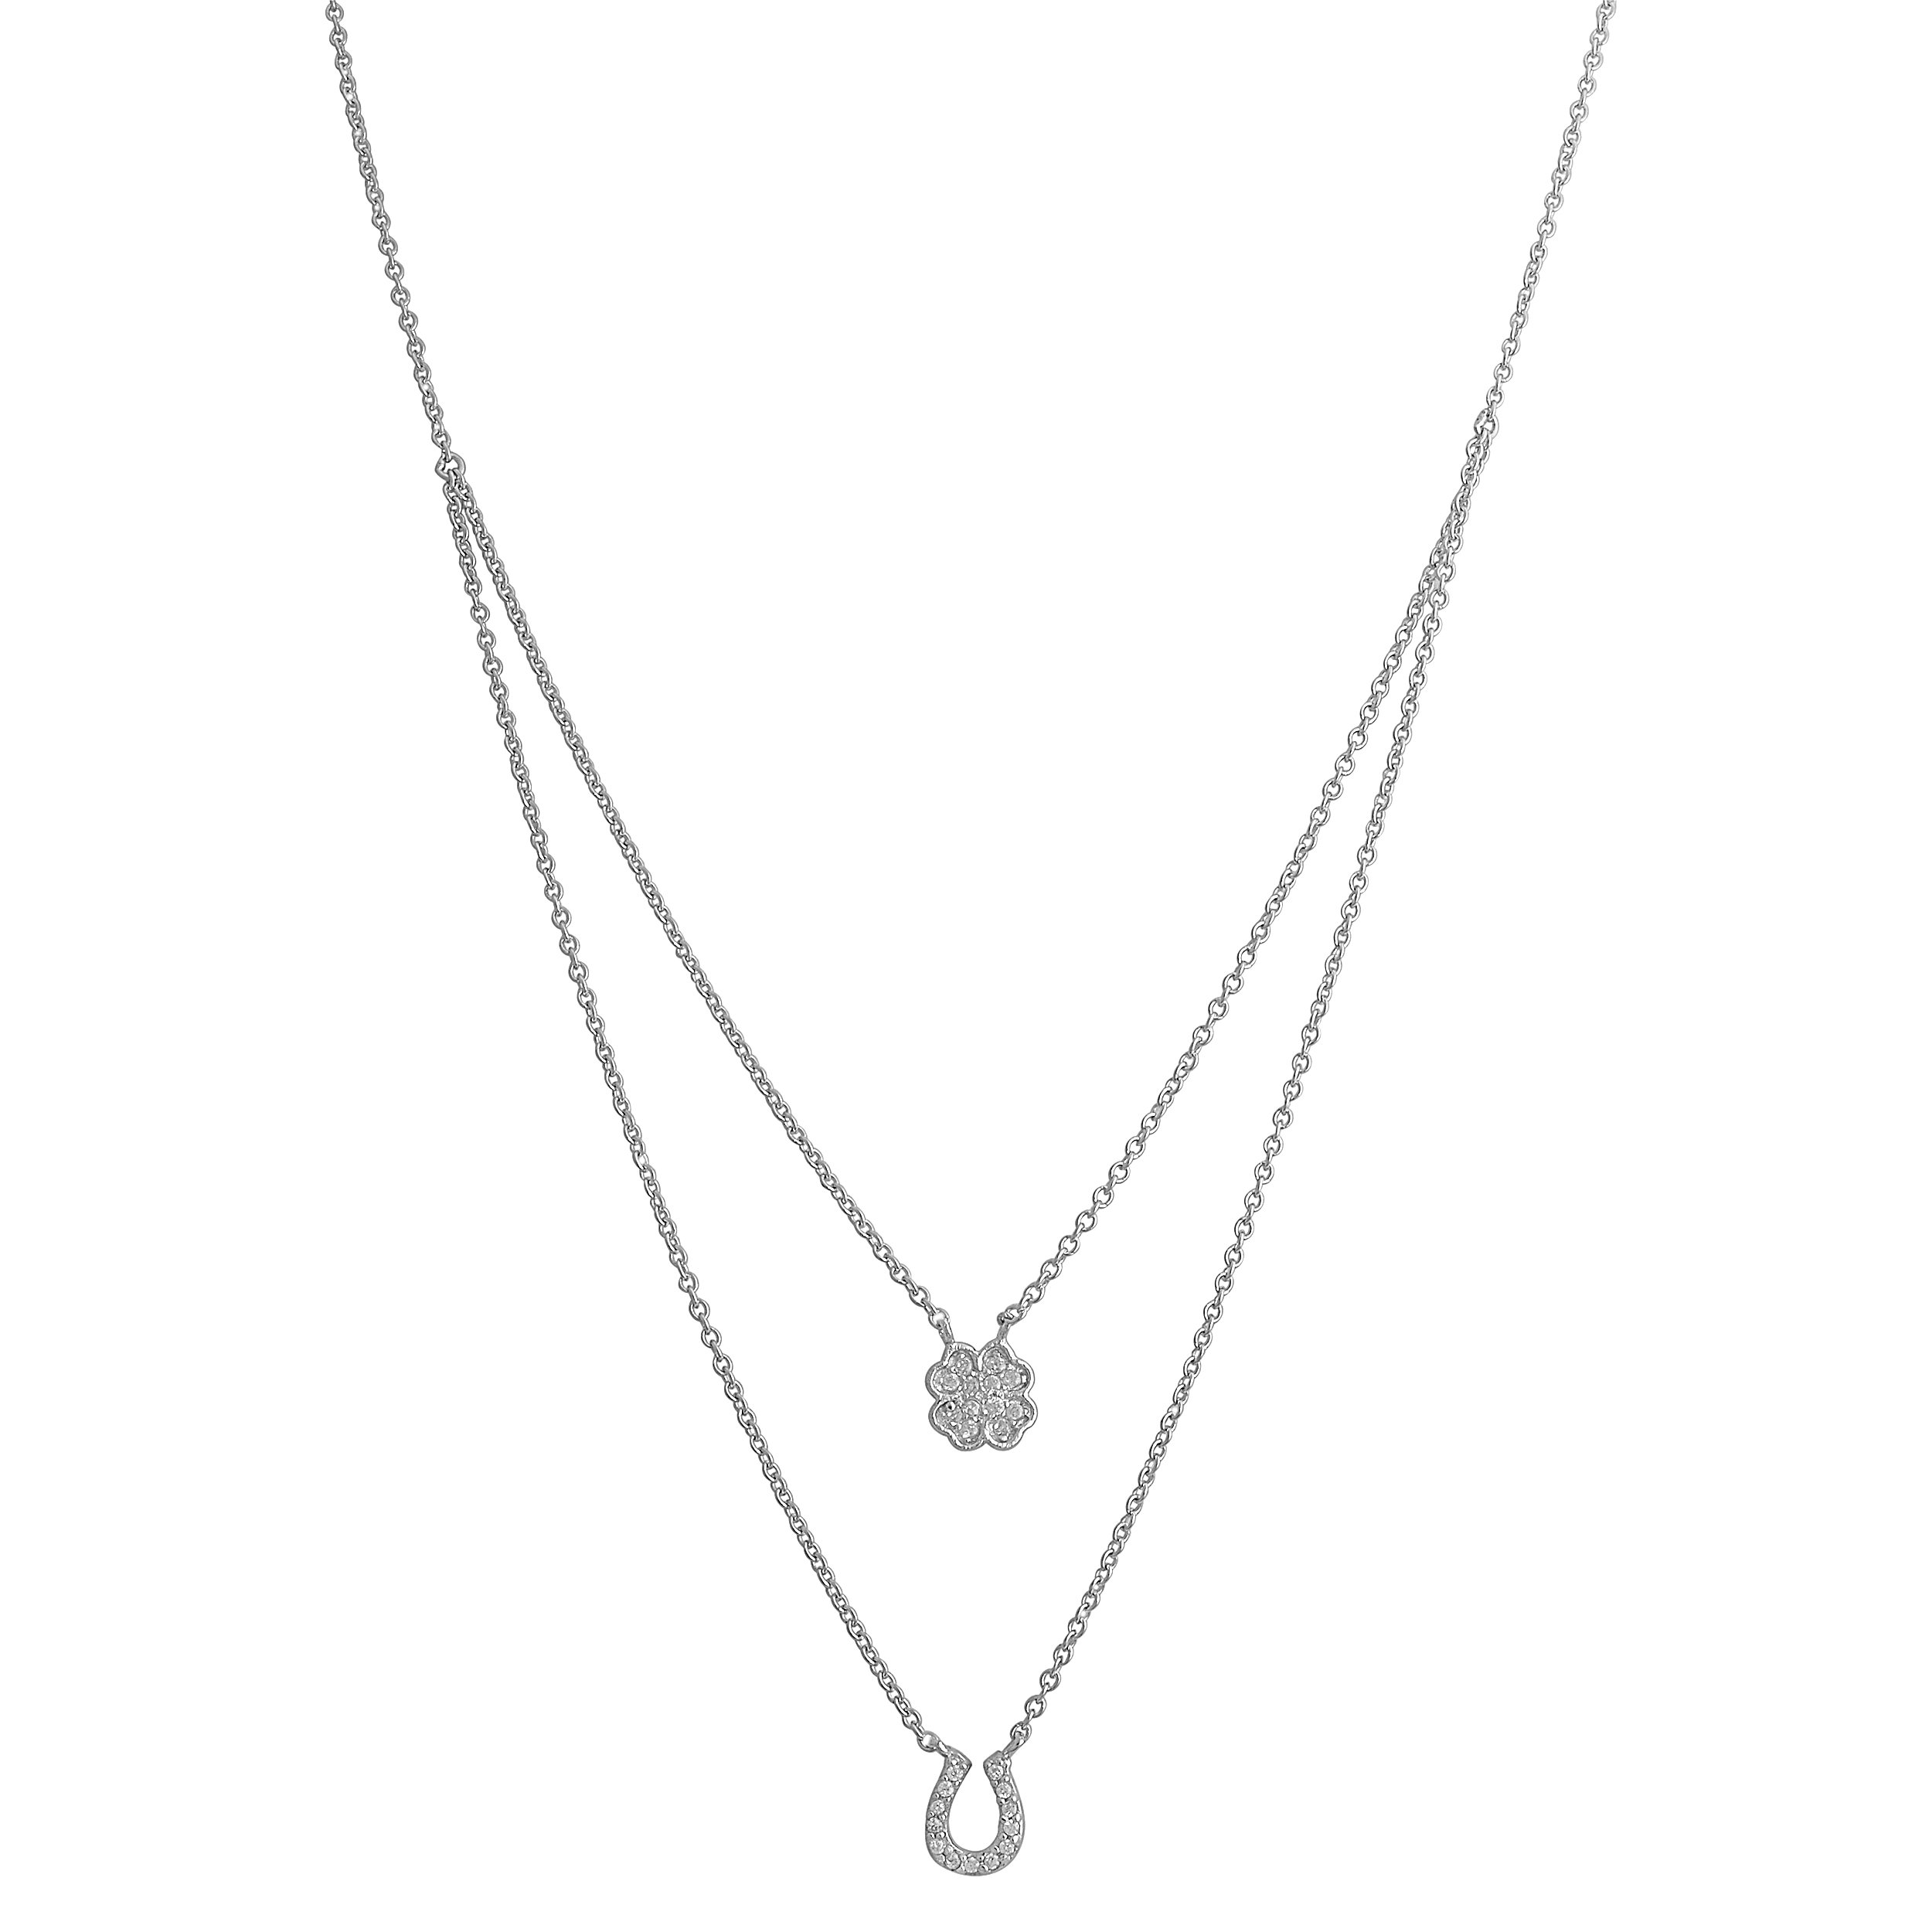 Sterling Silver Cubic Zirconia Clover and Horseshoe Charm Layered Necklace (16 inch)